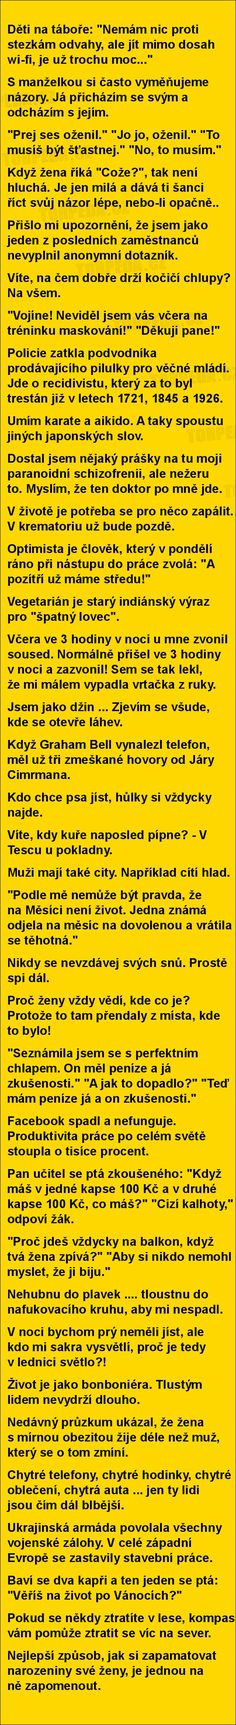 vtipné obrázky, vtipy a videa Good Jokes, Funny Jokes, Try Not To Laugh, Jokes Quotes, Funny Photos, Picture Quotes, The Funny, Quotations, Haha